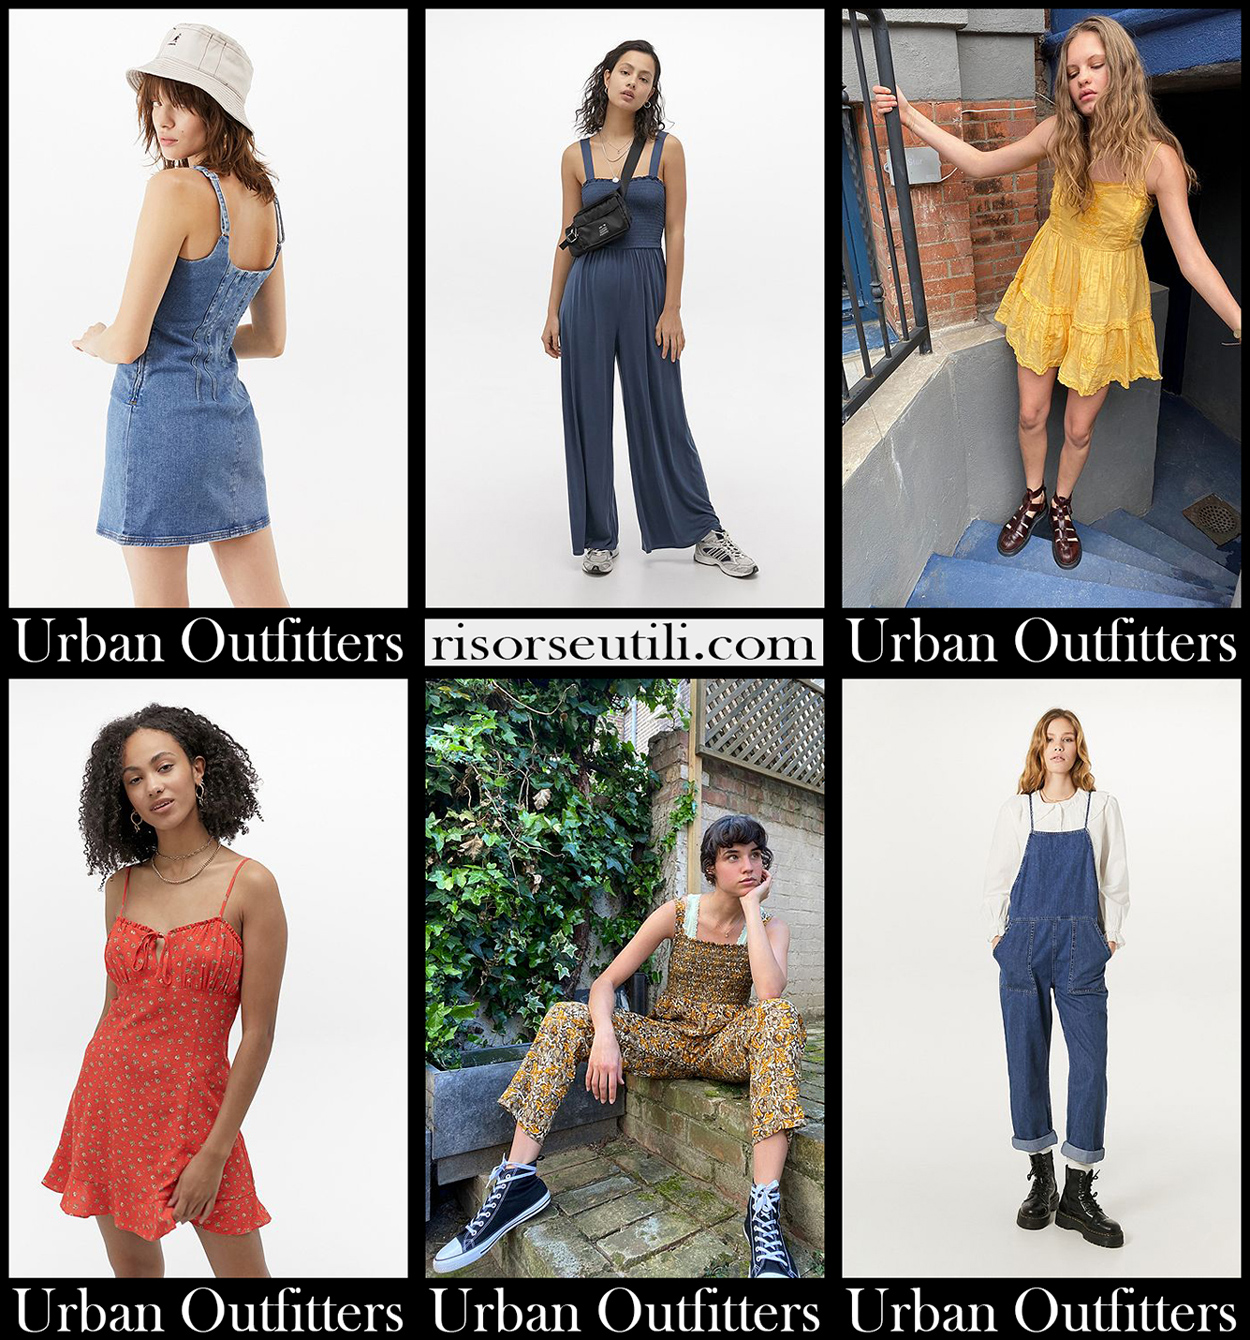 Urban Outfitters dresses 2020 new arrivals womens clothing